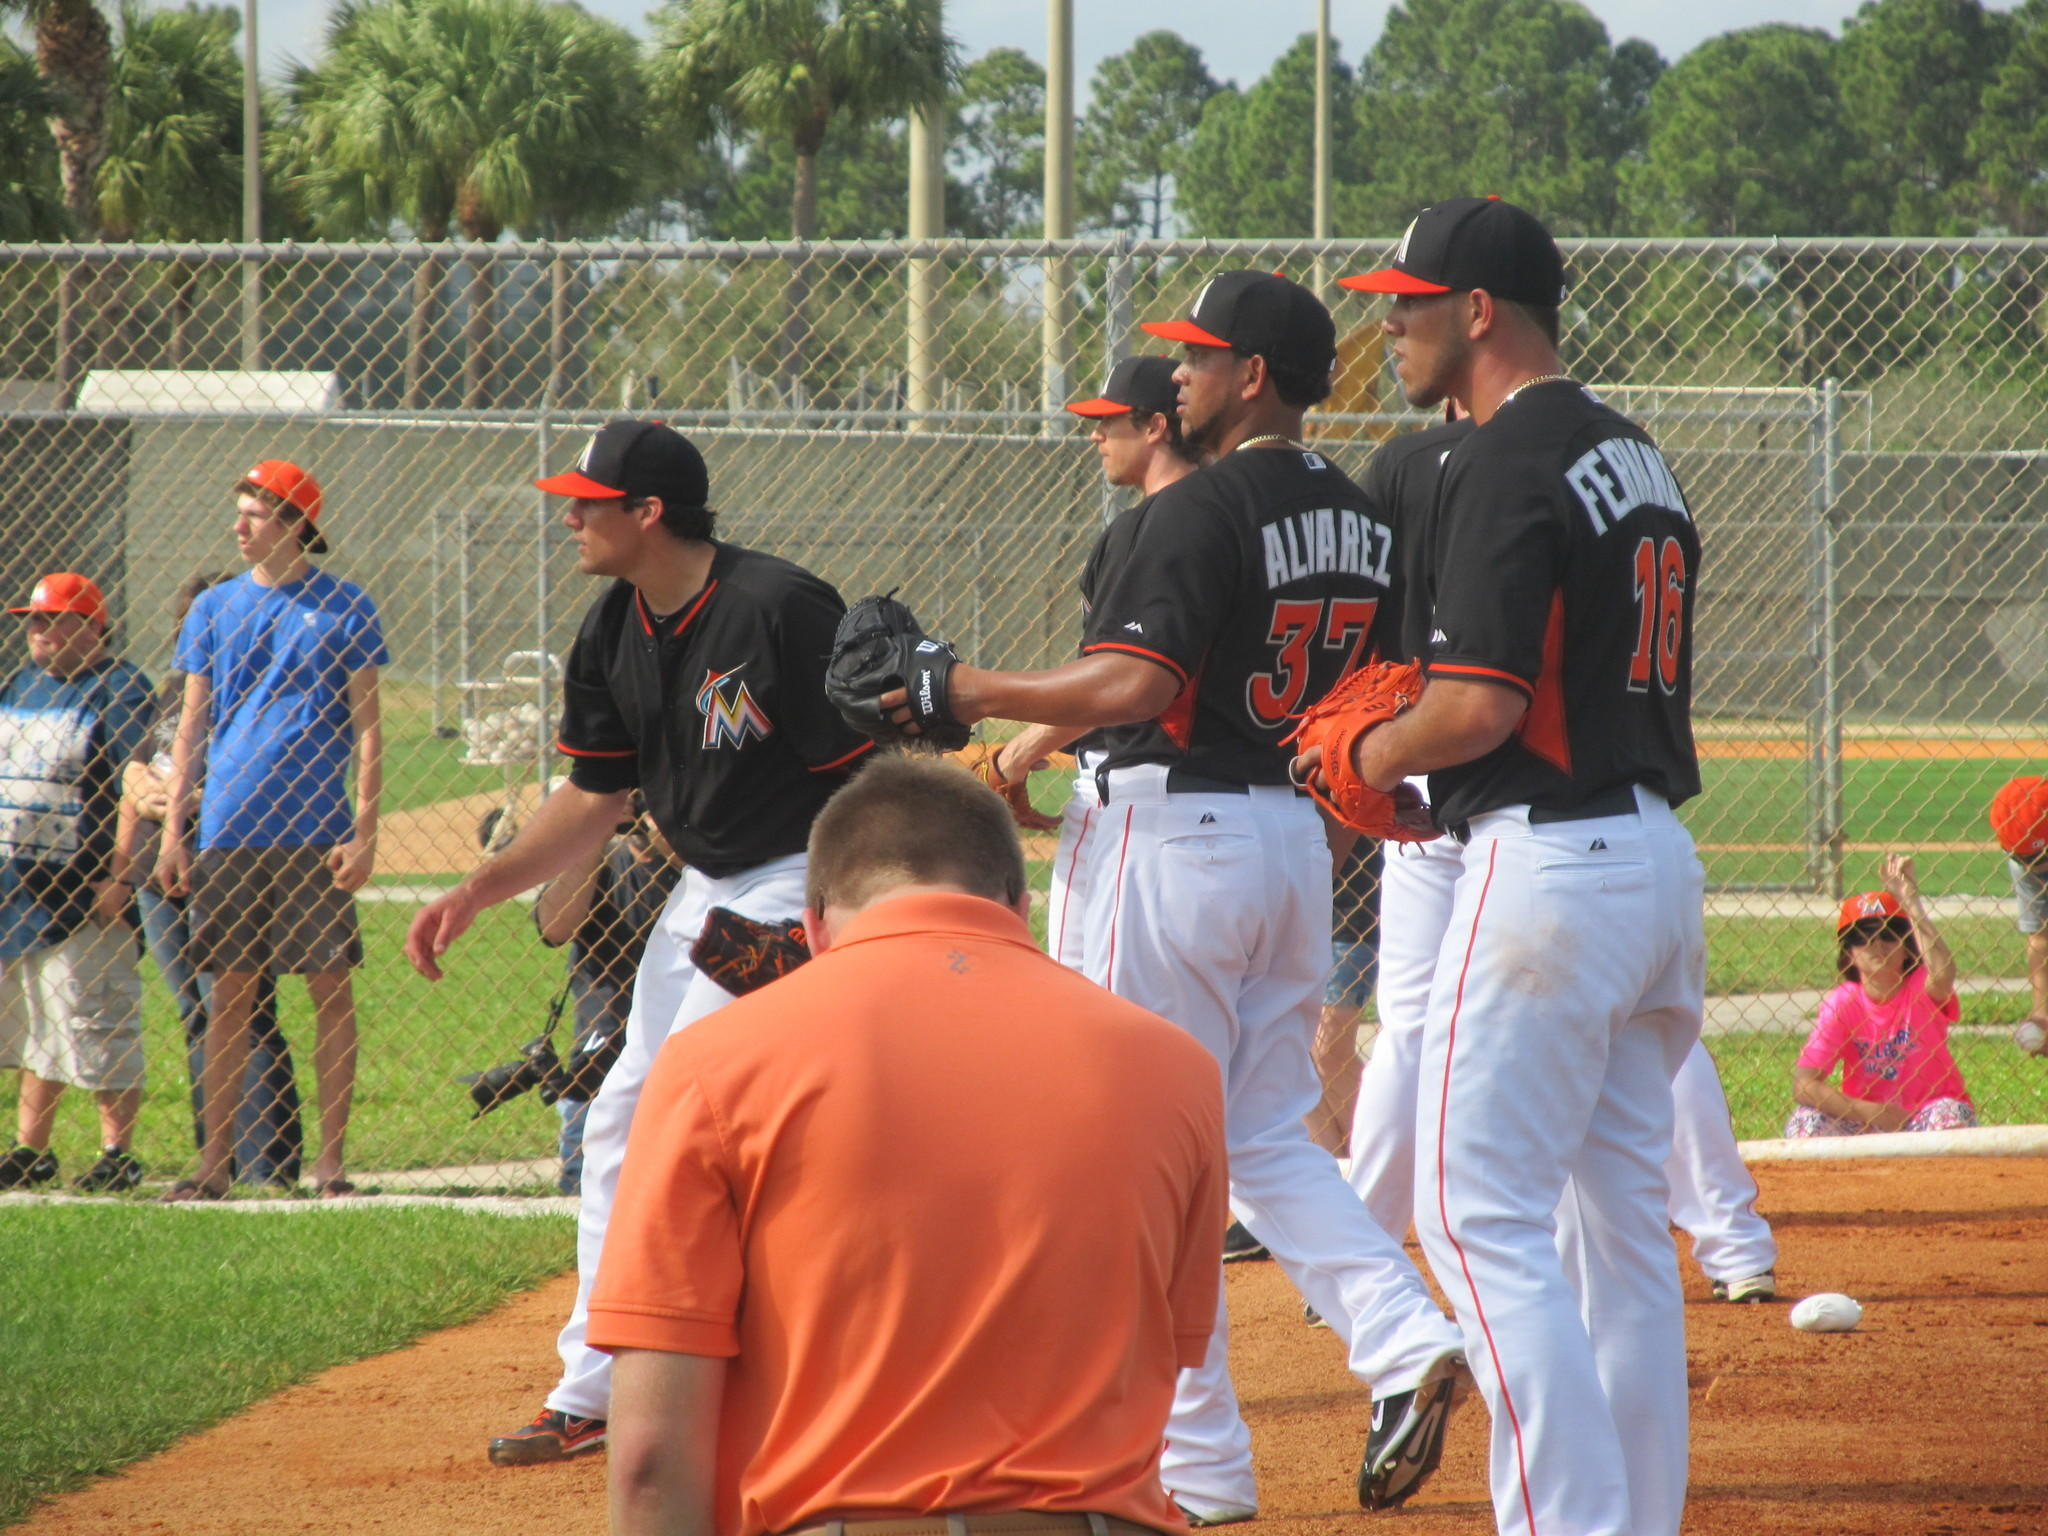 Miami Marlins first day of official workout for the full team. Feb. 20th 2014. Jupiter, Fl